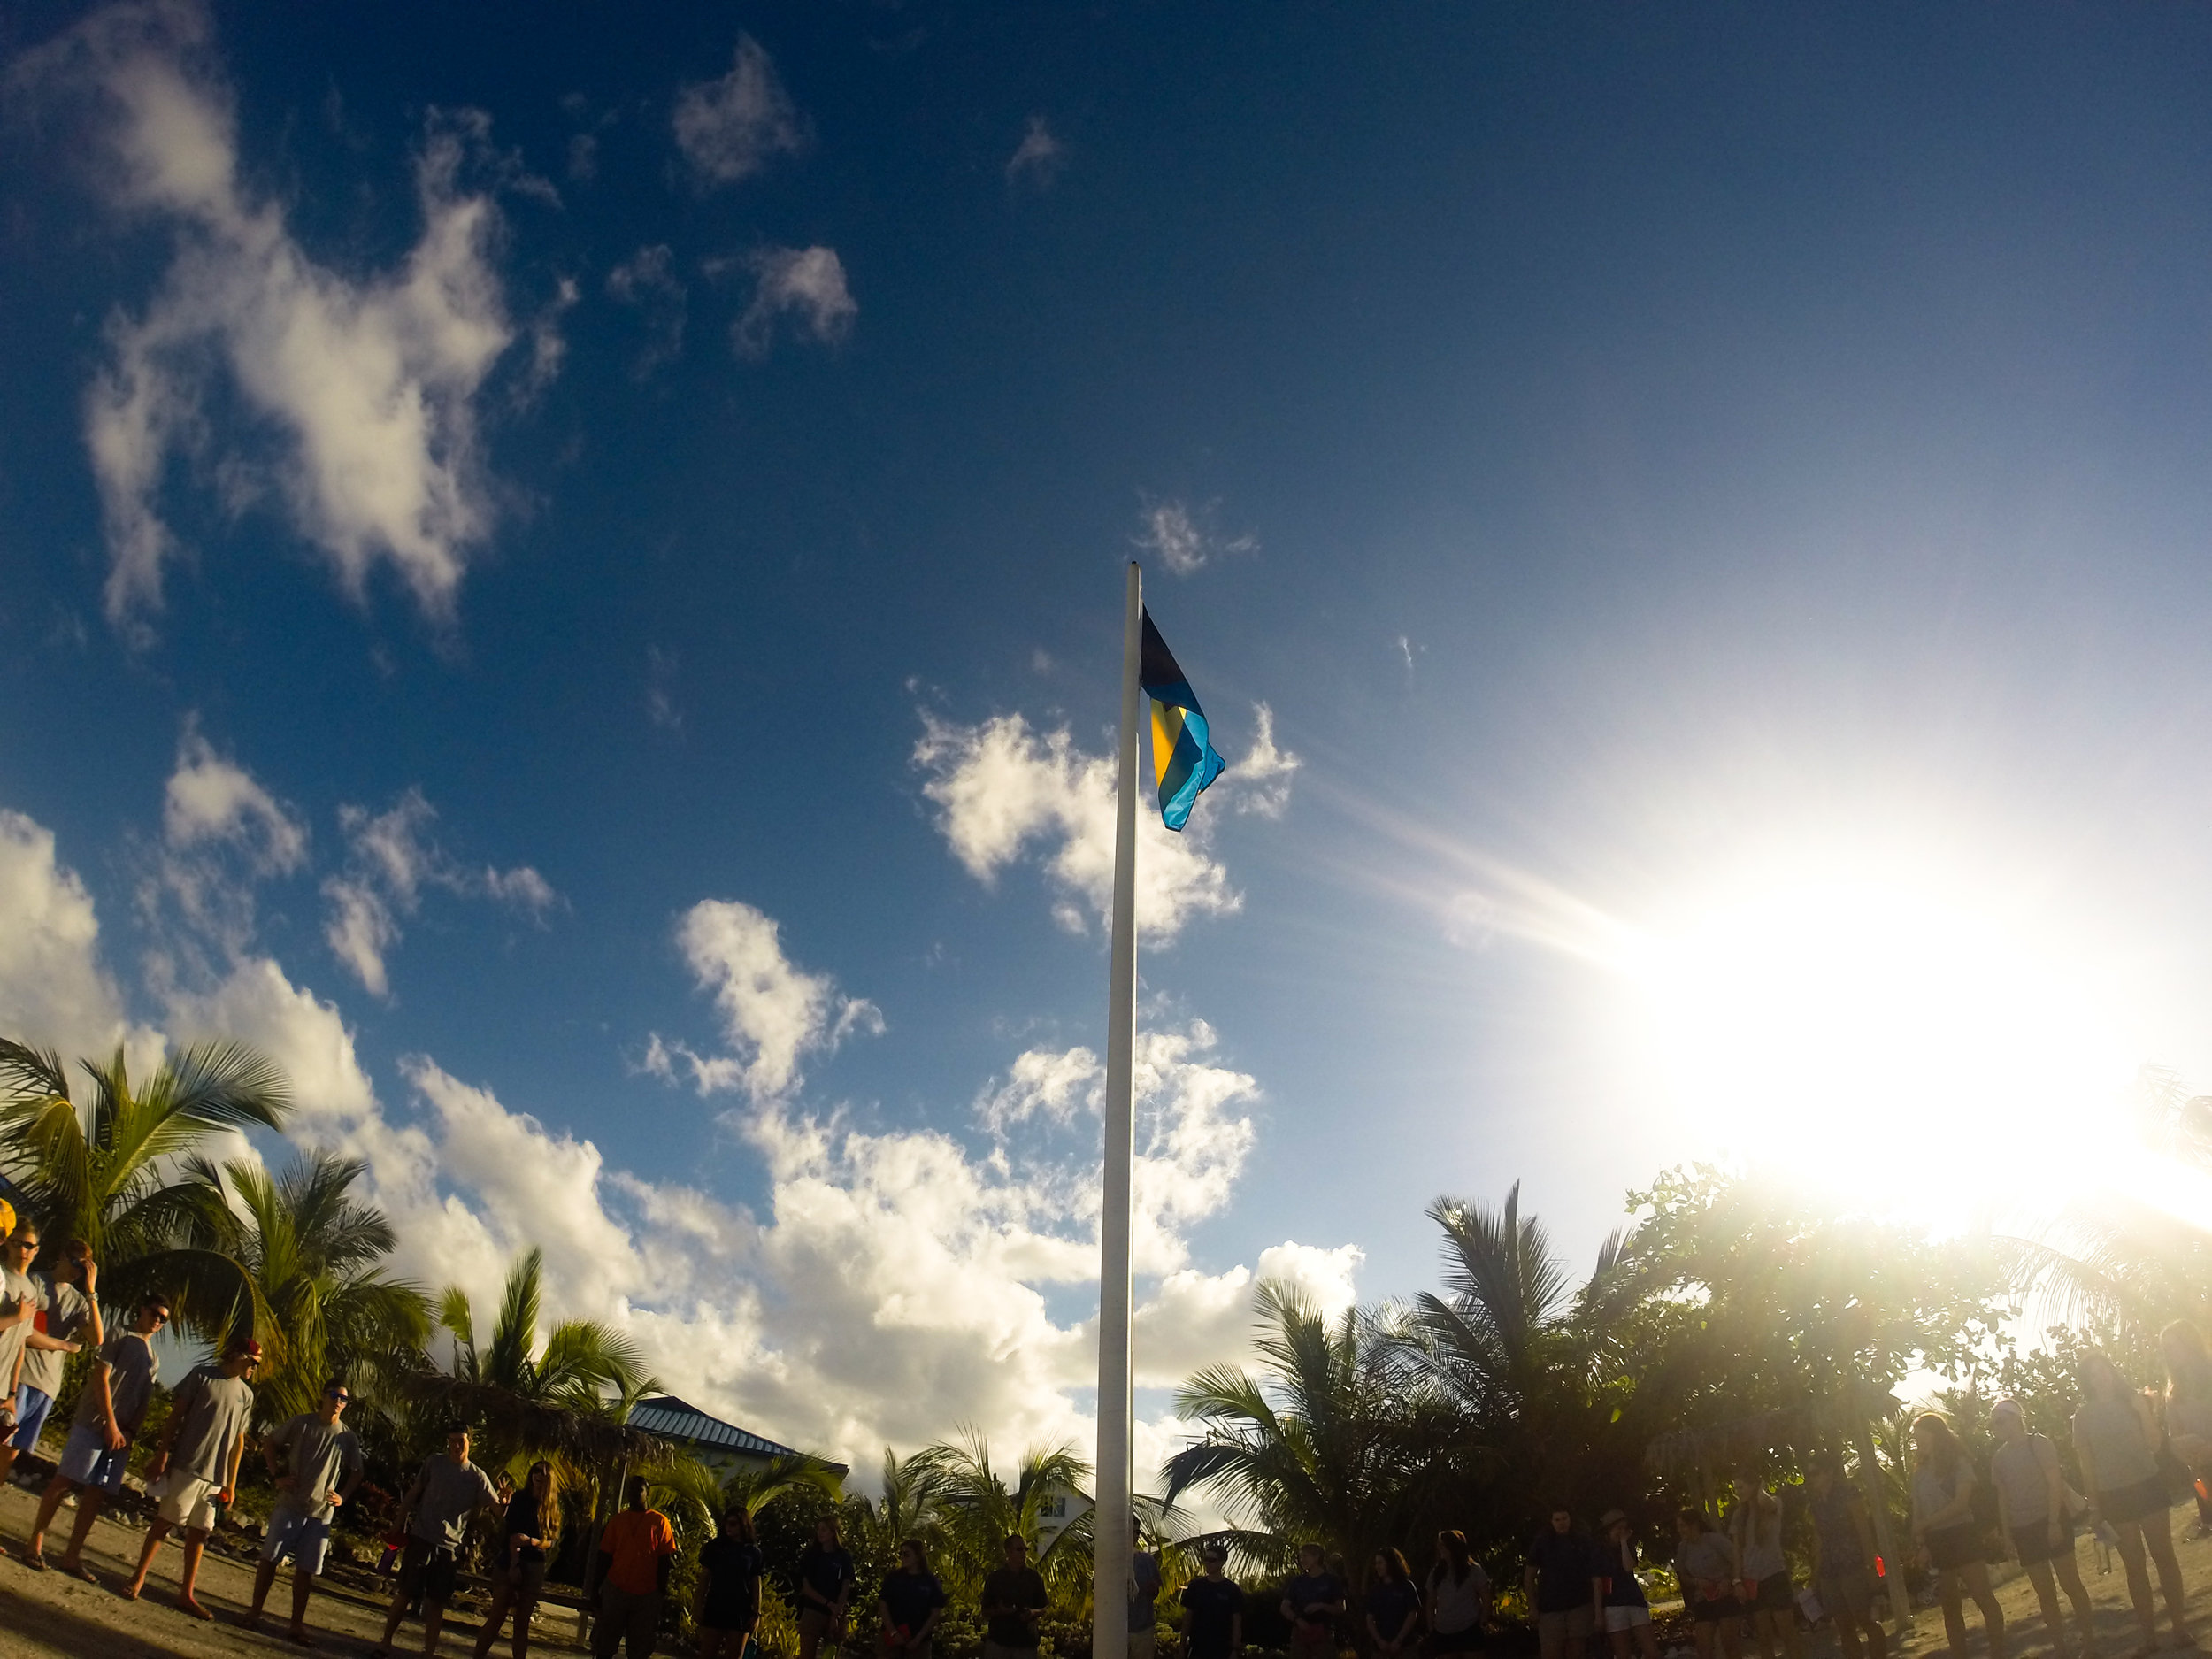 One of the first experiences at The Island School was gathering around the flagpole.